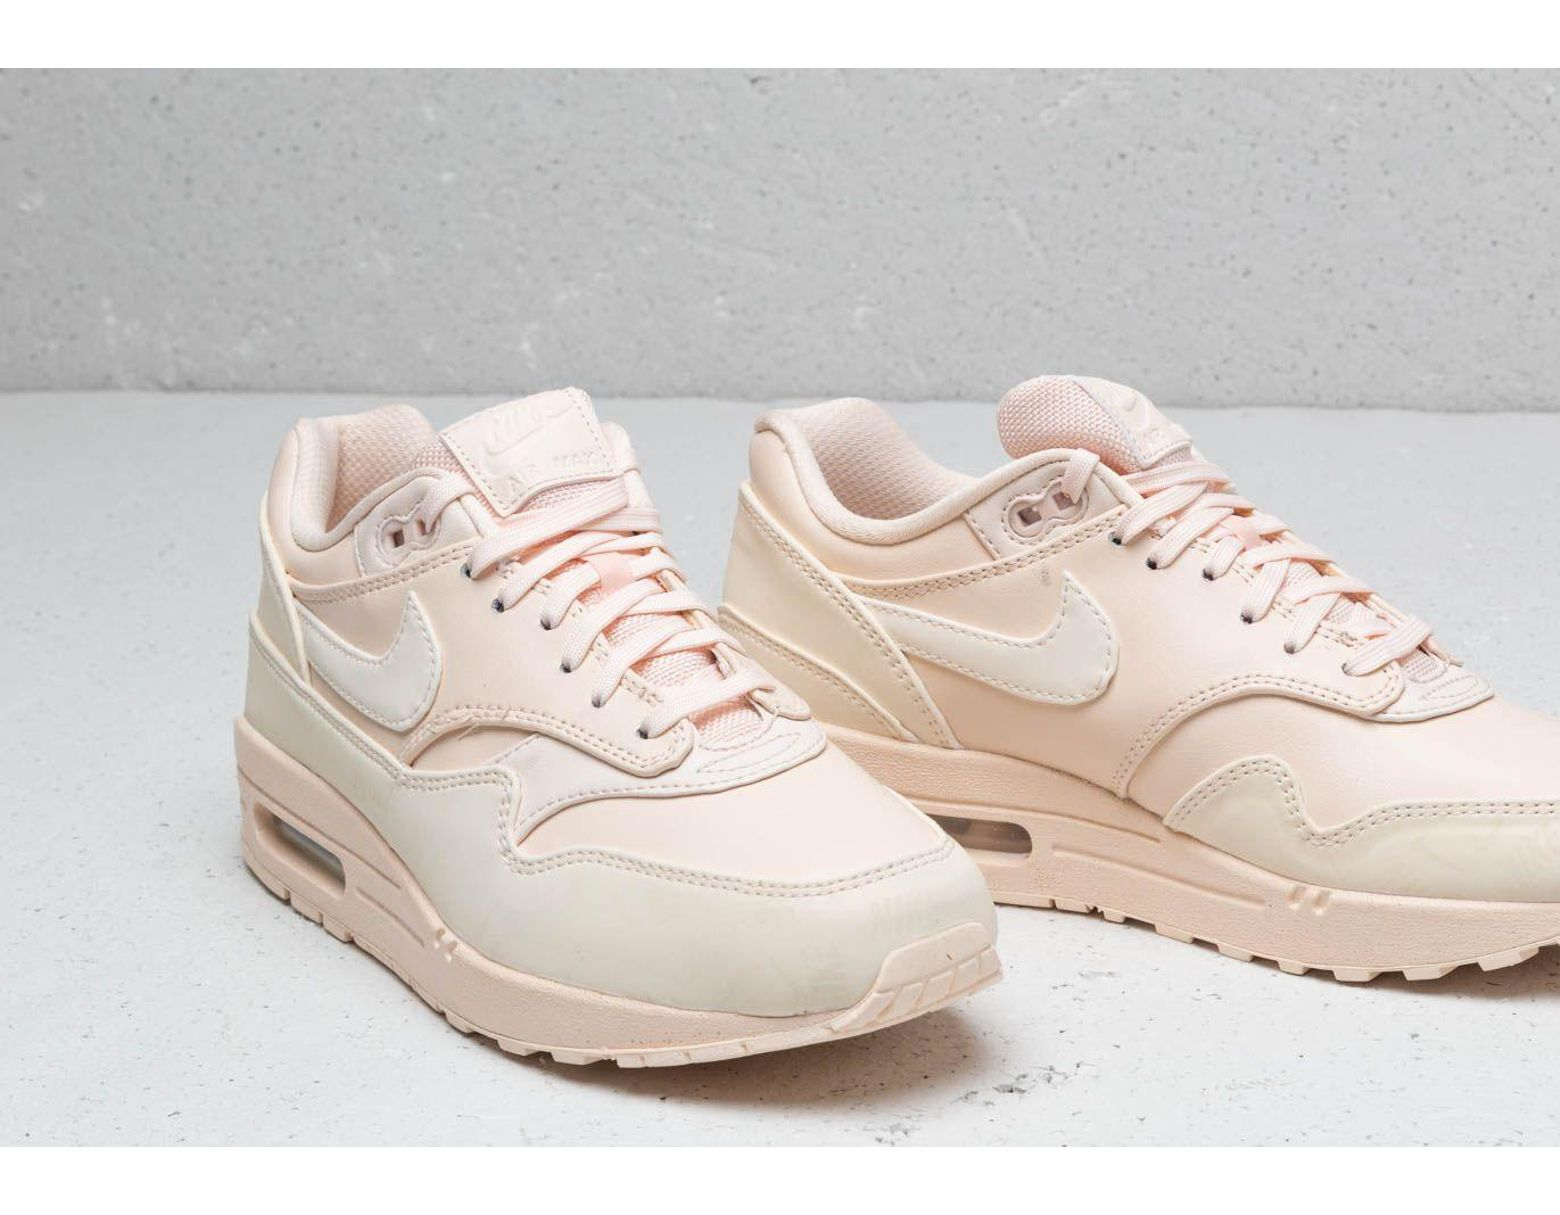 top fashion c6b72 1f2fc Nike Wmns Air Max 1 Lx Guava Ice  Guava Ice-guava Ice - Lyst